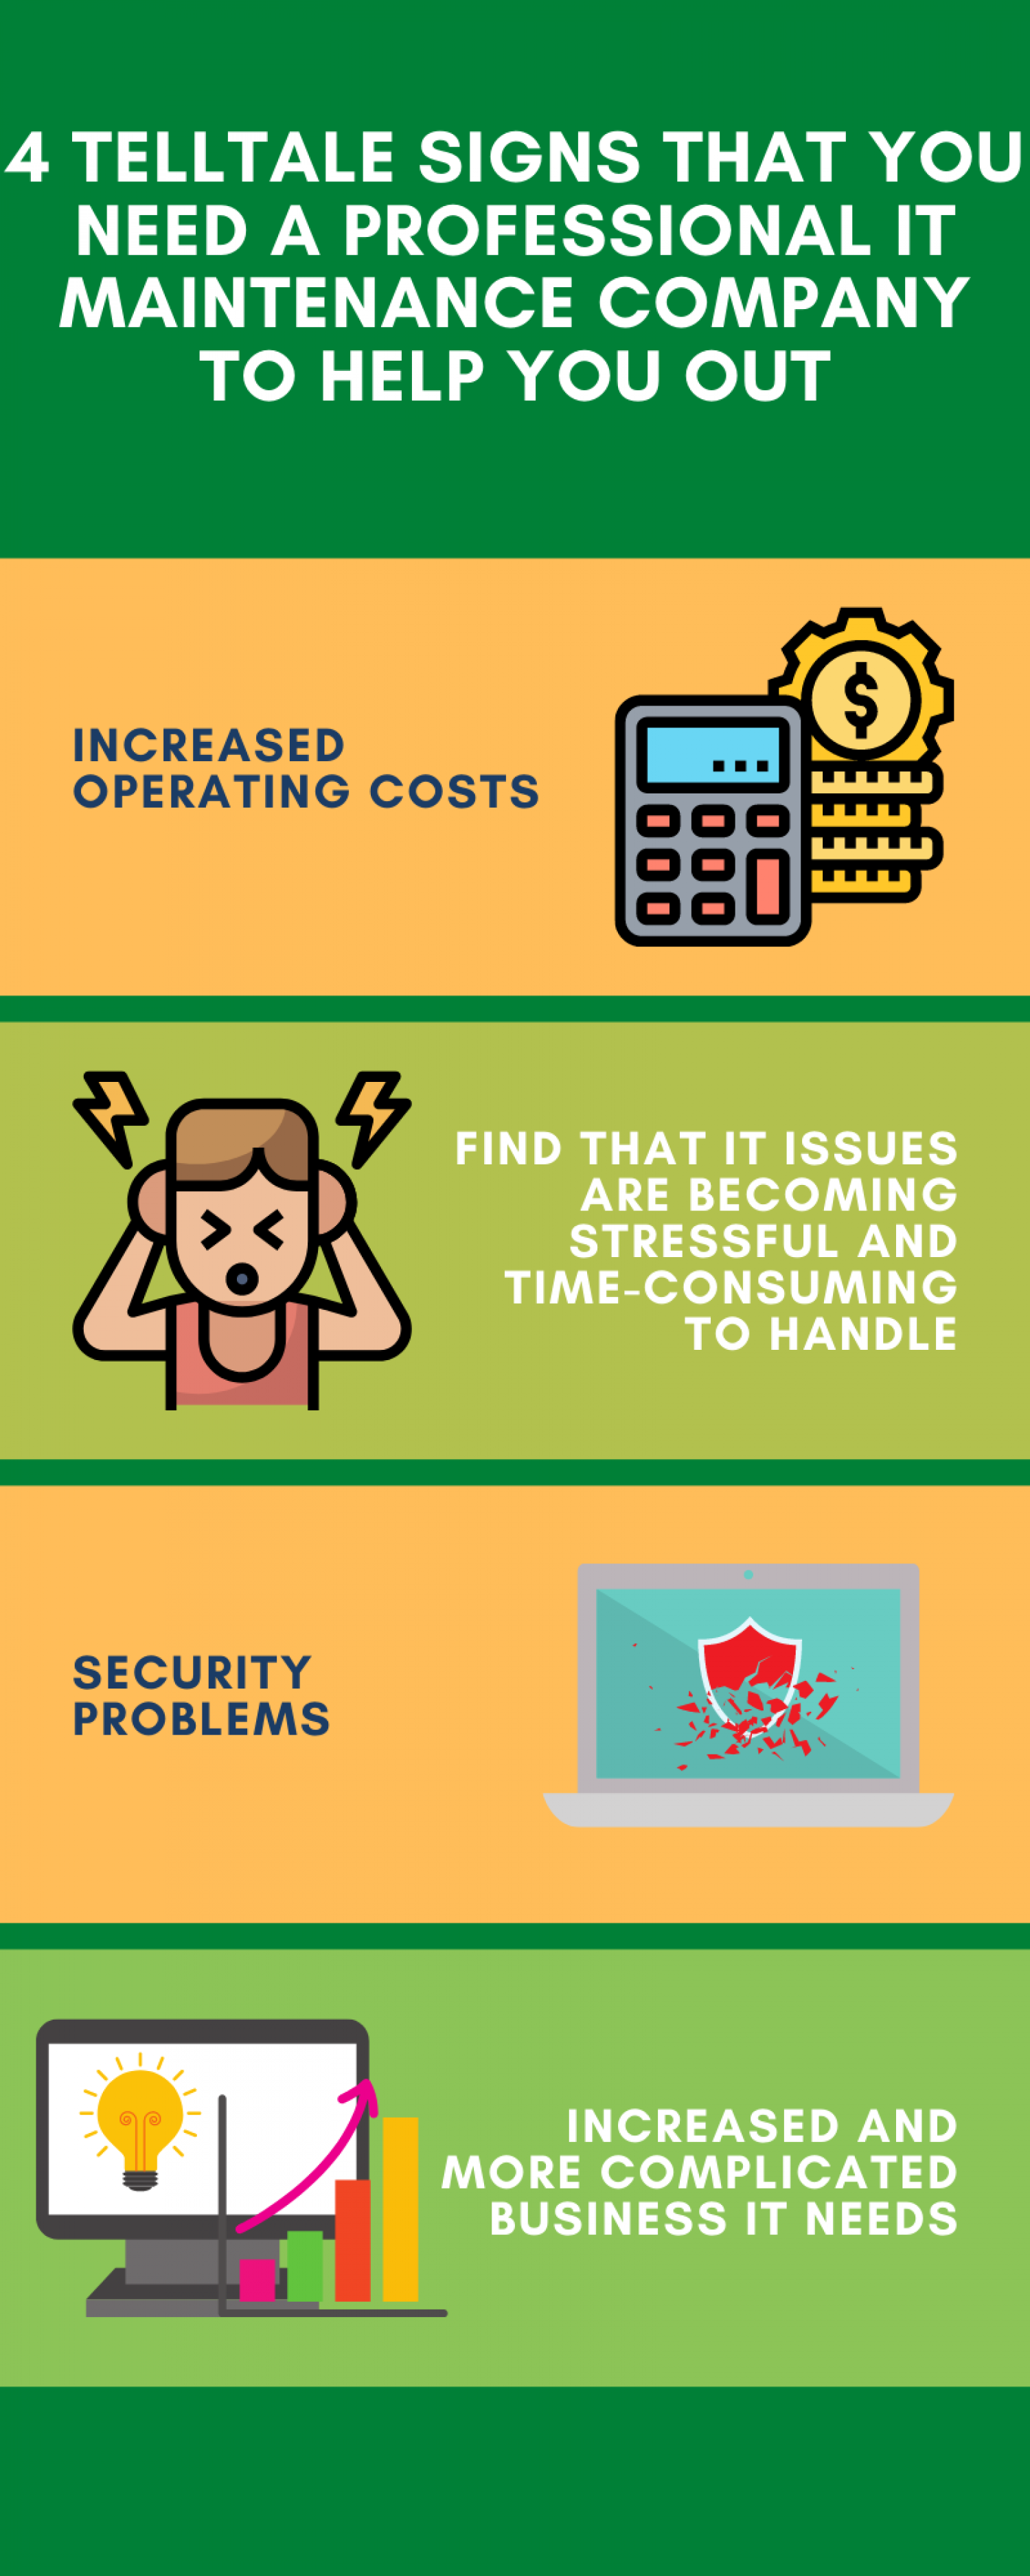 4 Telltale Signs That You Need a Professional IT Maintenance Company to Help You Out Infographic